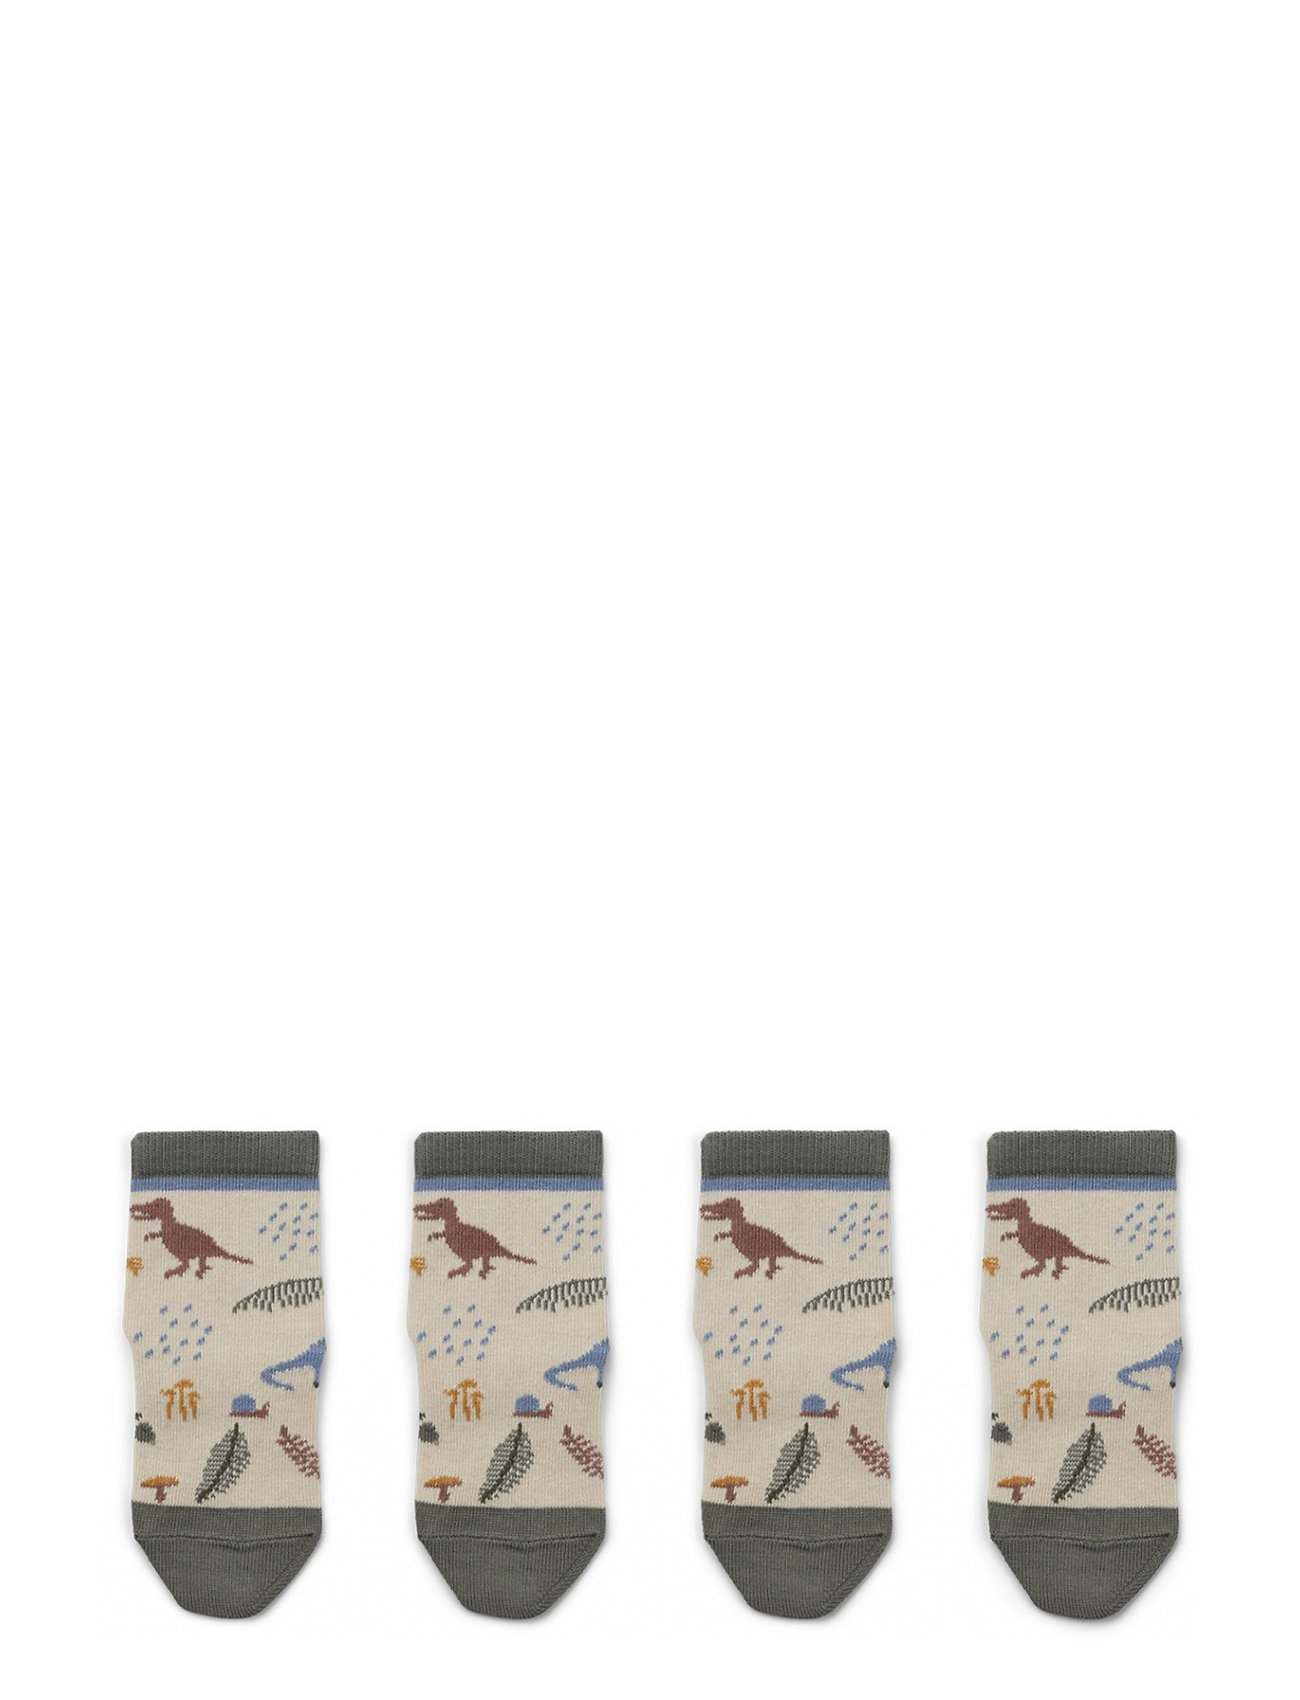 Liewood Silas cotton socks - 2 pack - DINO MIX